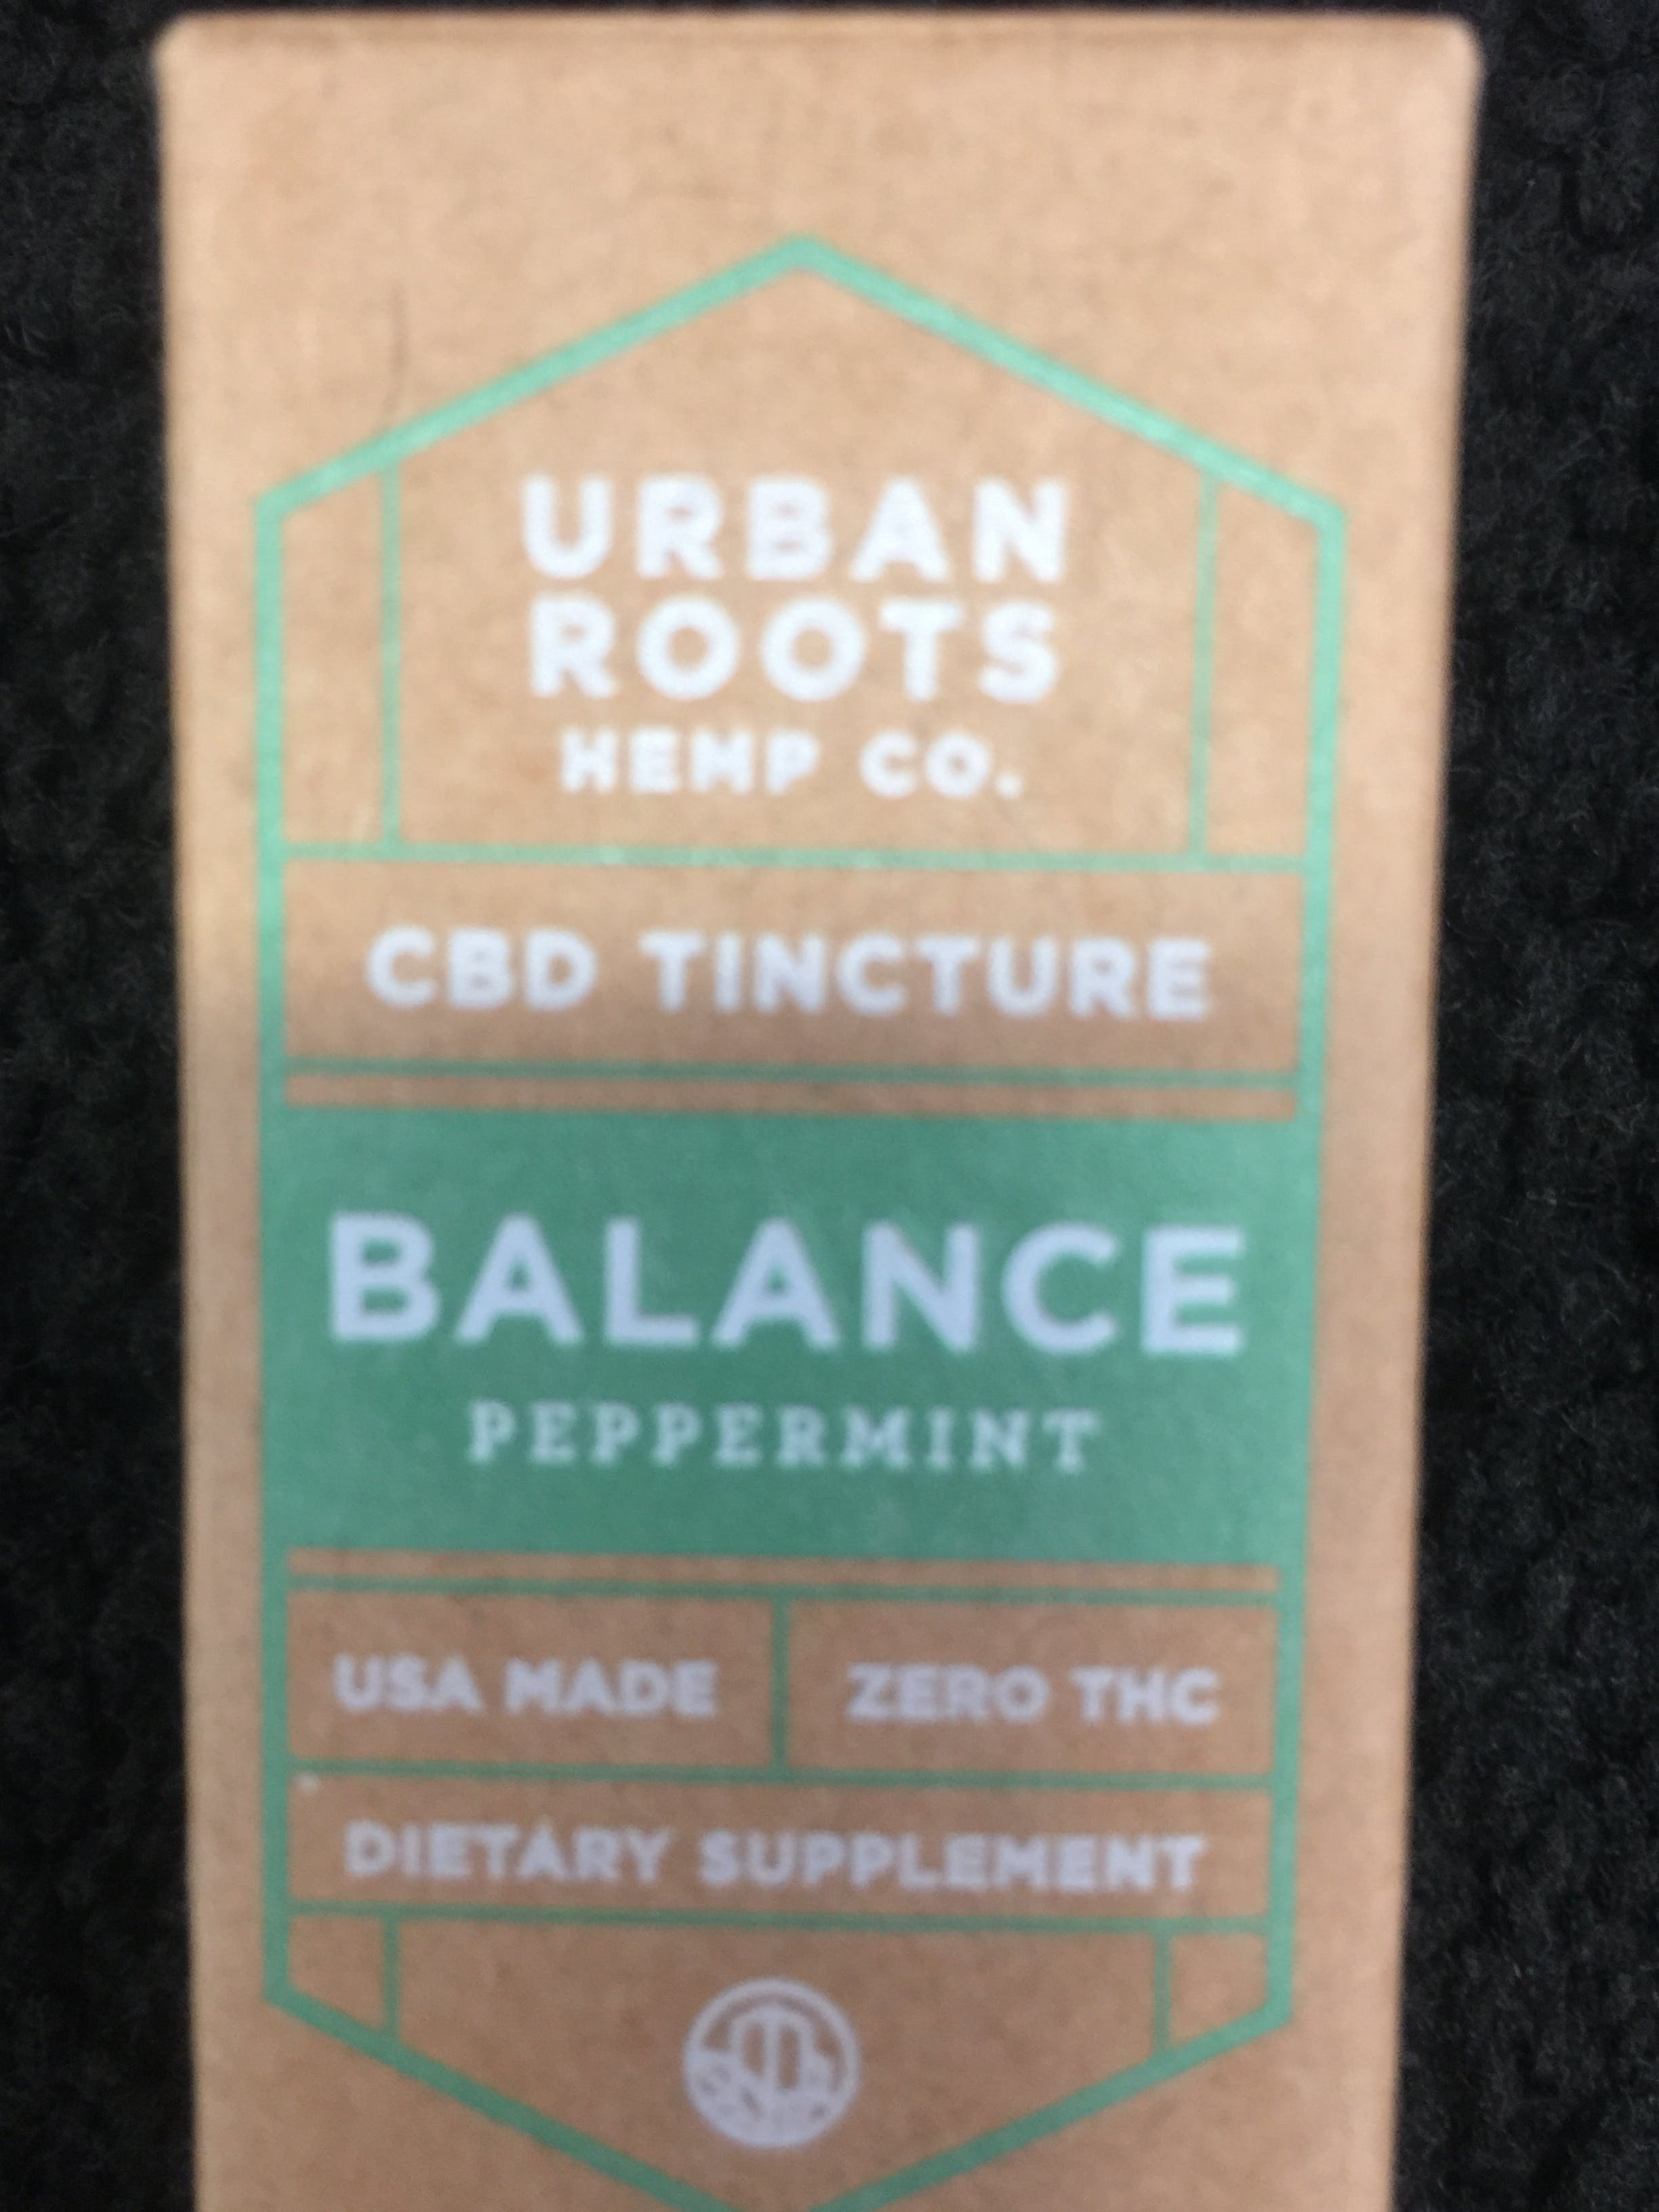 tincture-balance-cbd-tincture-urban-roots-hemp-co